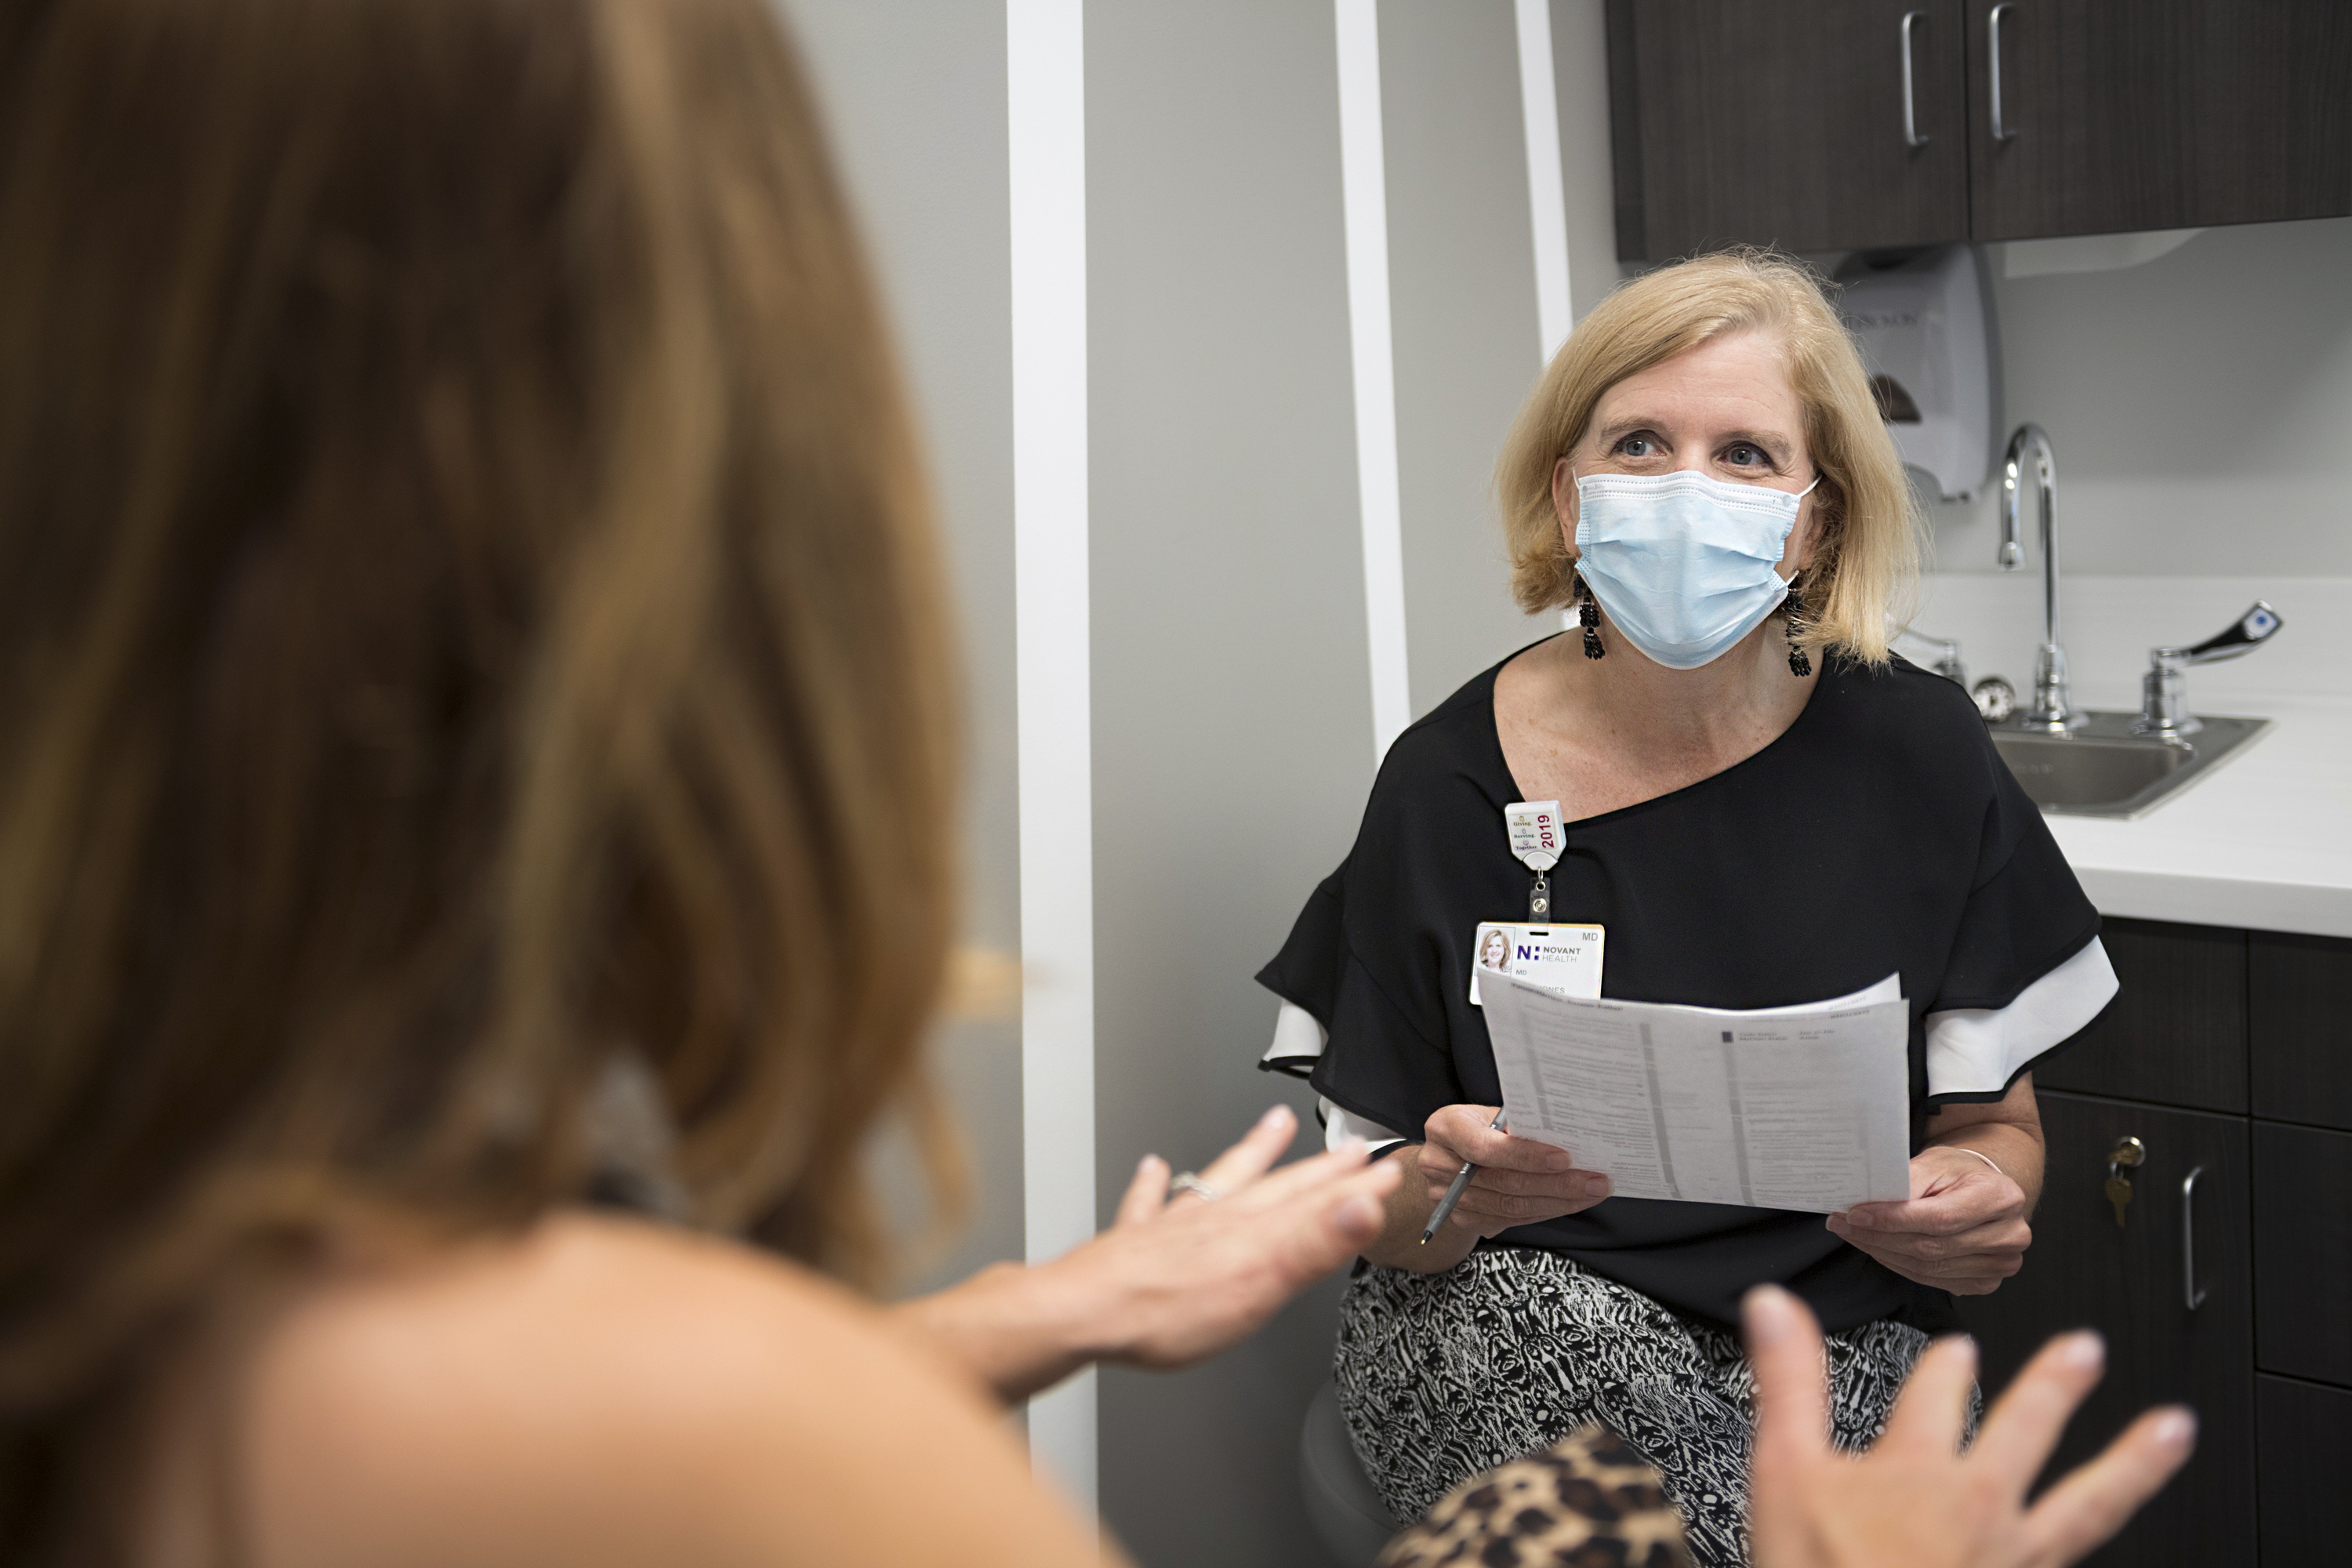 Dr. Alyse Kelly-Jones talks with a patient at the Novant Health Women's Center.